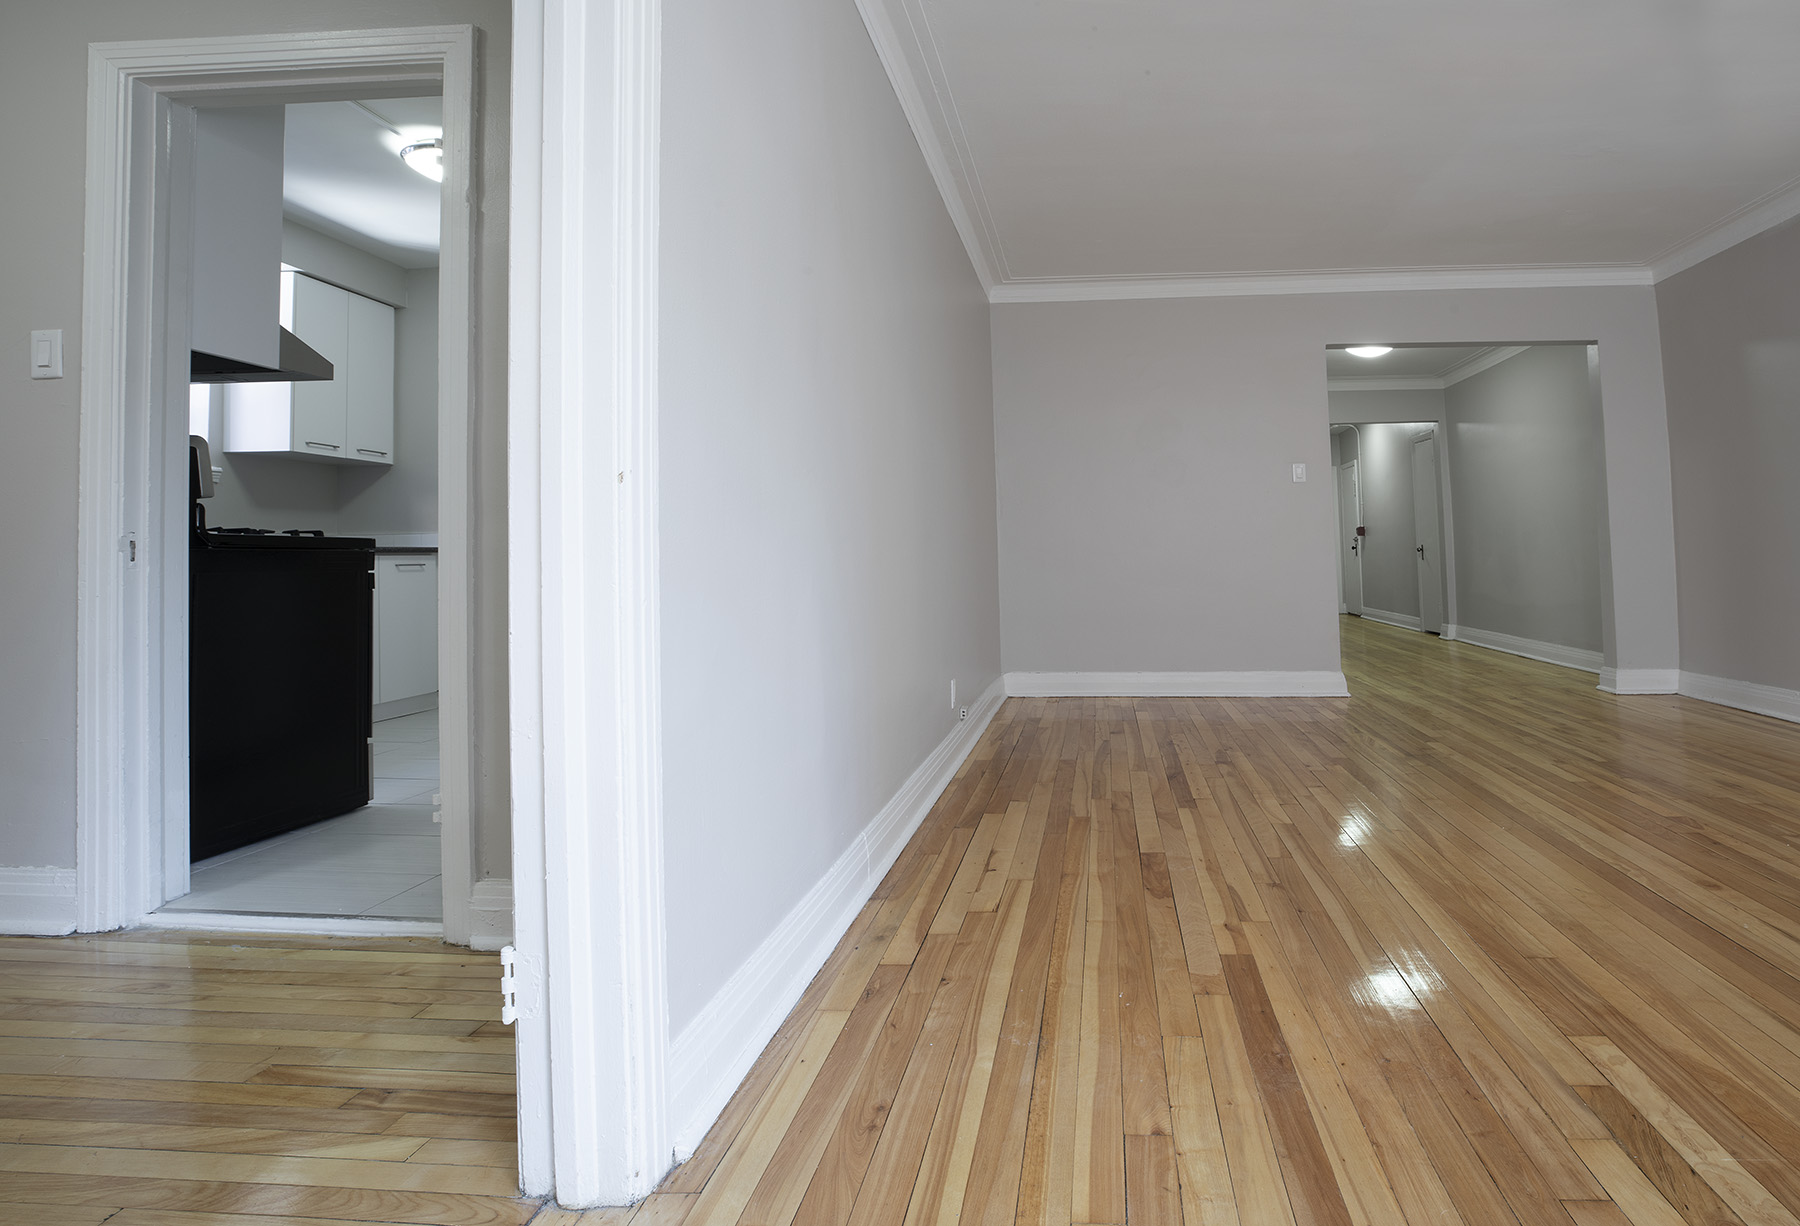 3 bedroom Apartments for rent in Cote-des-Neiges at 5000 Clanranald - Photo 13 - RentQuebecApartments – L401549